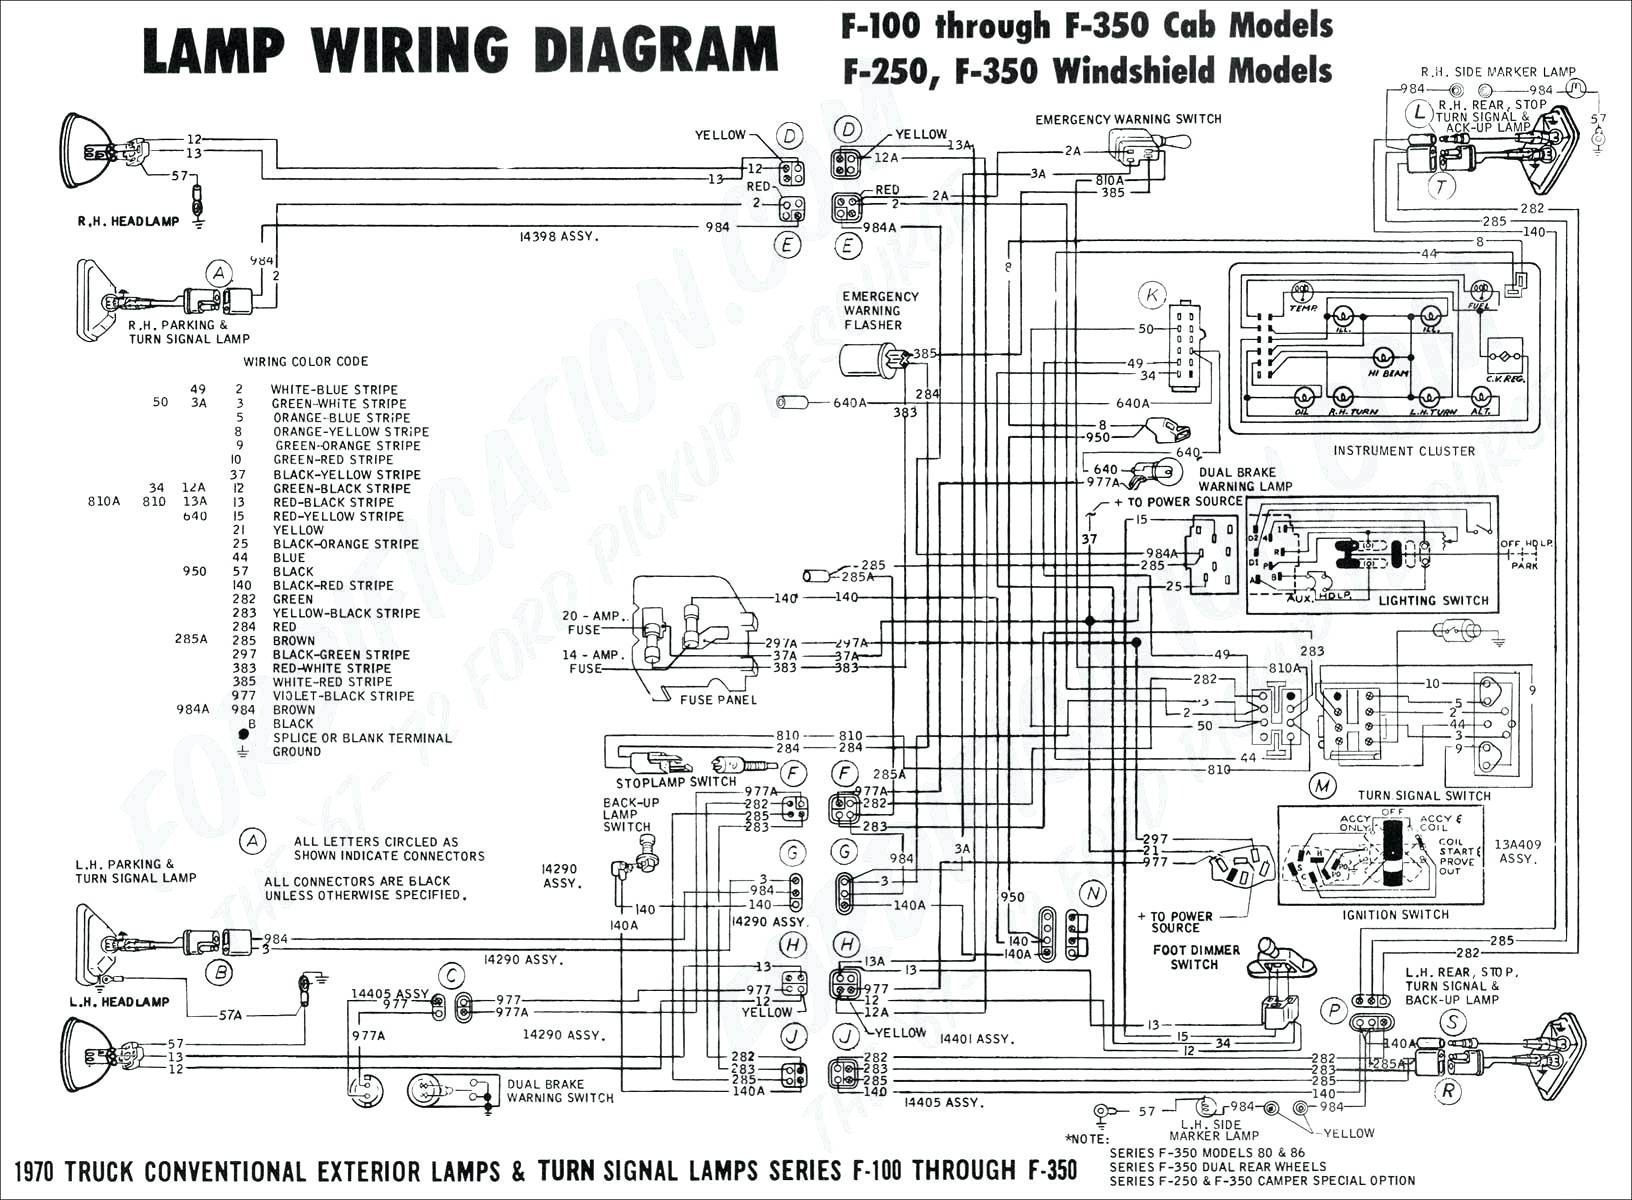 Wiring A Lamp Diagram